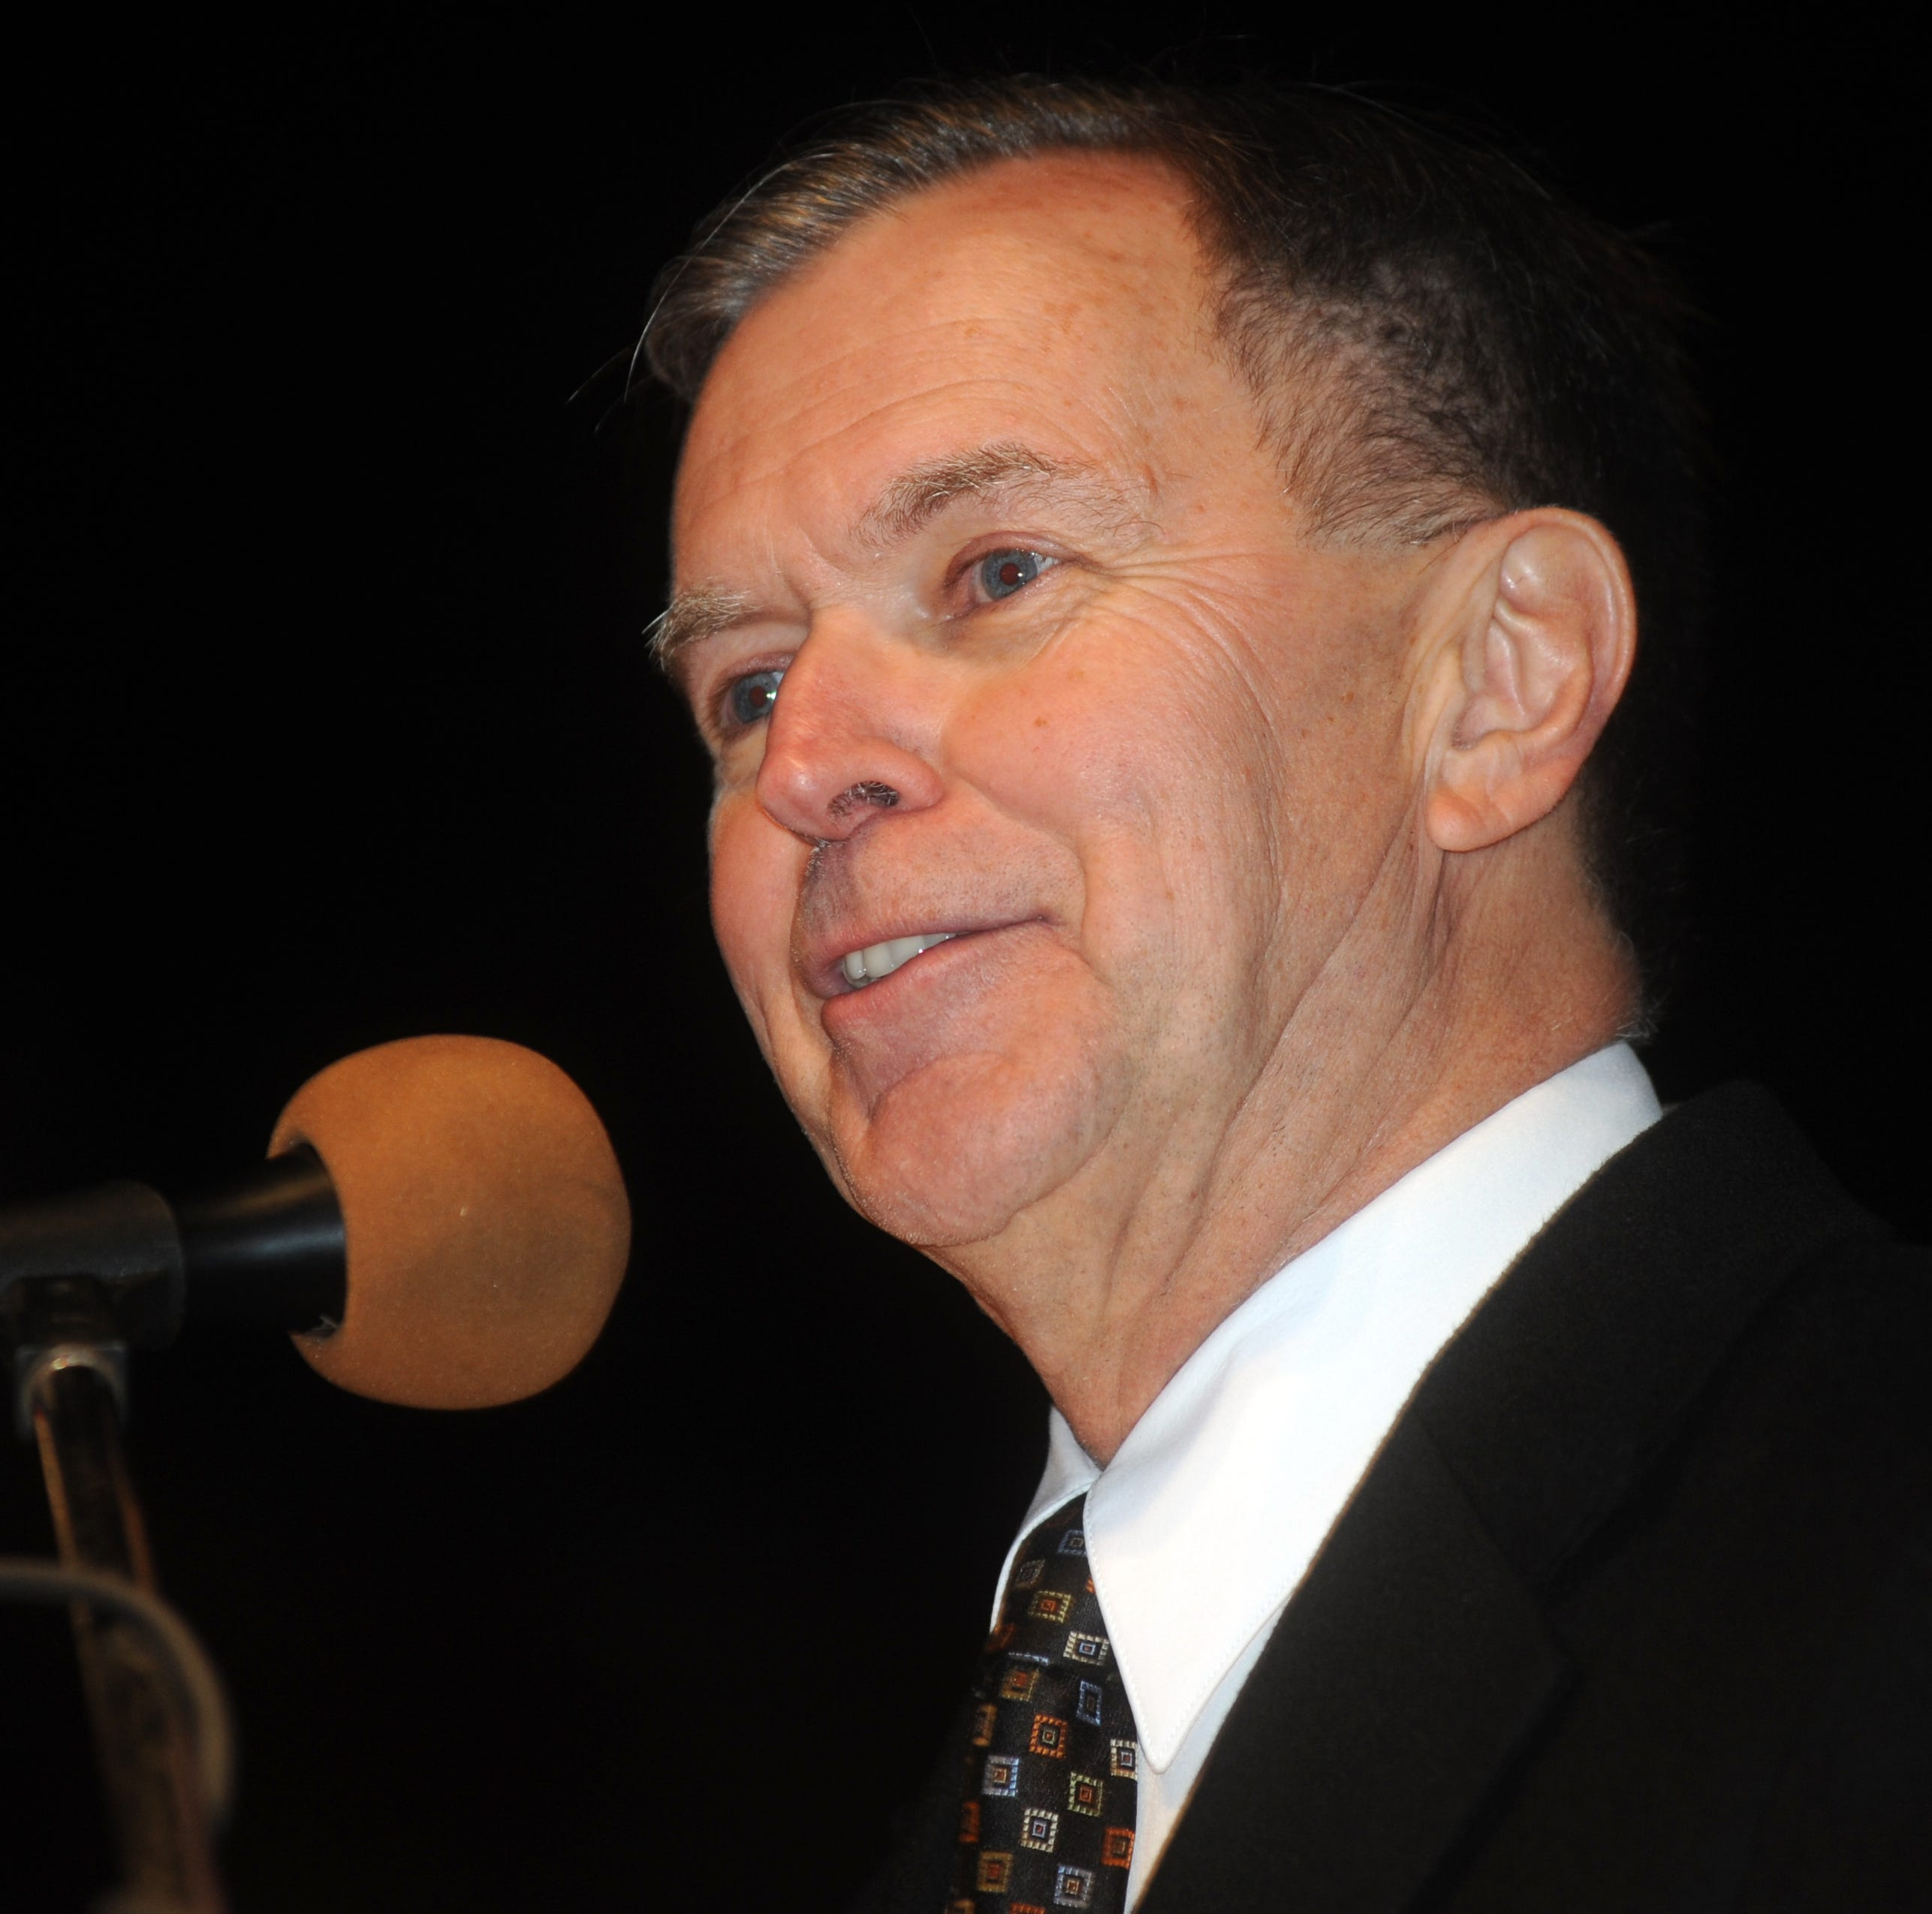 Tom Thompson, sports director and announcer for WTNS Radio, died Oct. 6 after a battle with cancer. Thompson addresses the crowd at the Roscoe Village Christmas Candlelighting in this Dec. 2012 Tribune file photo.